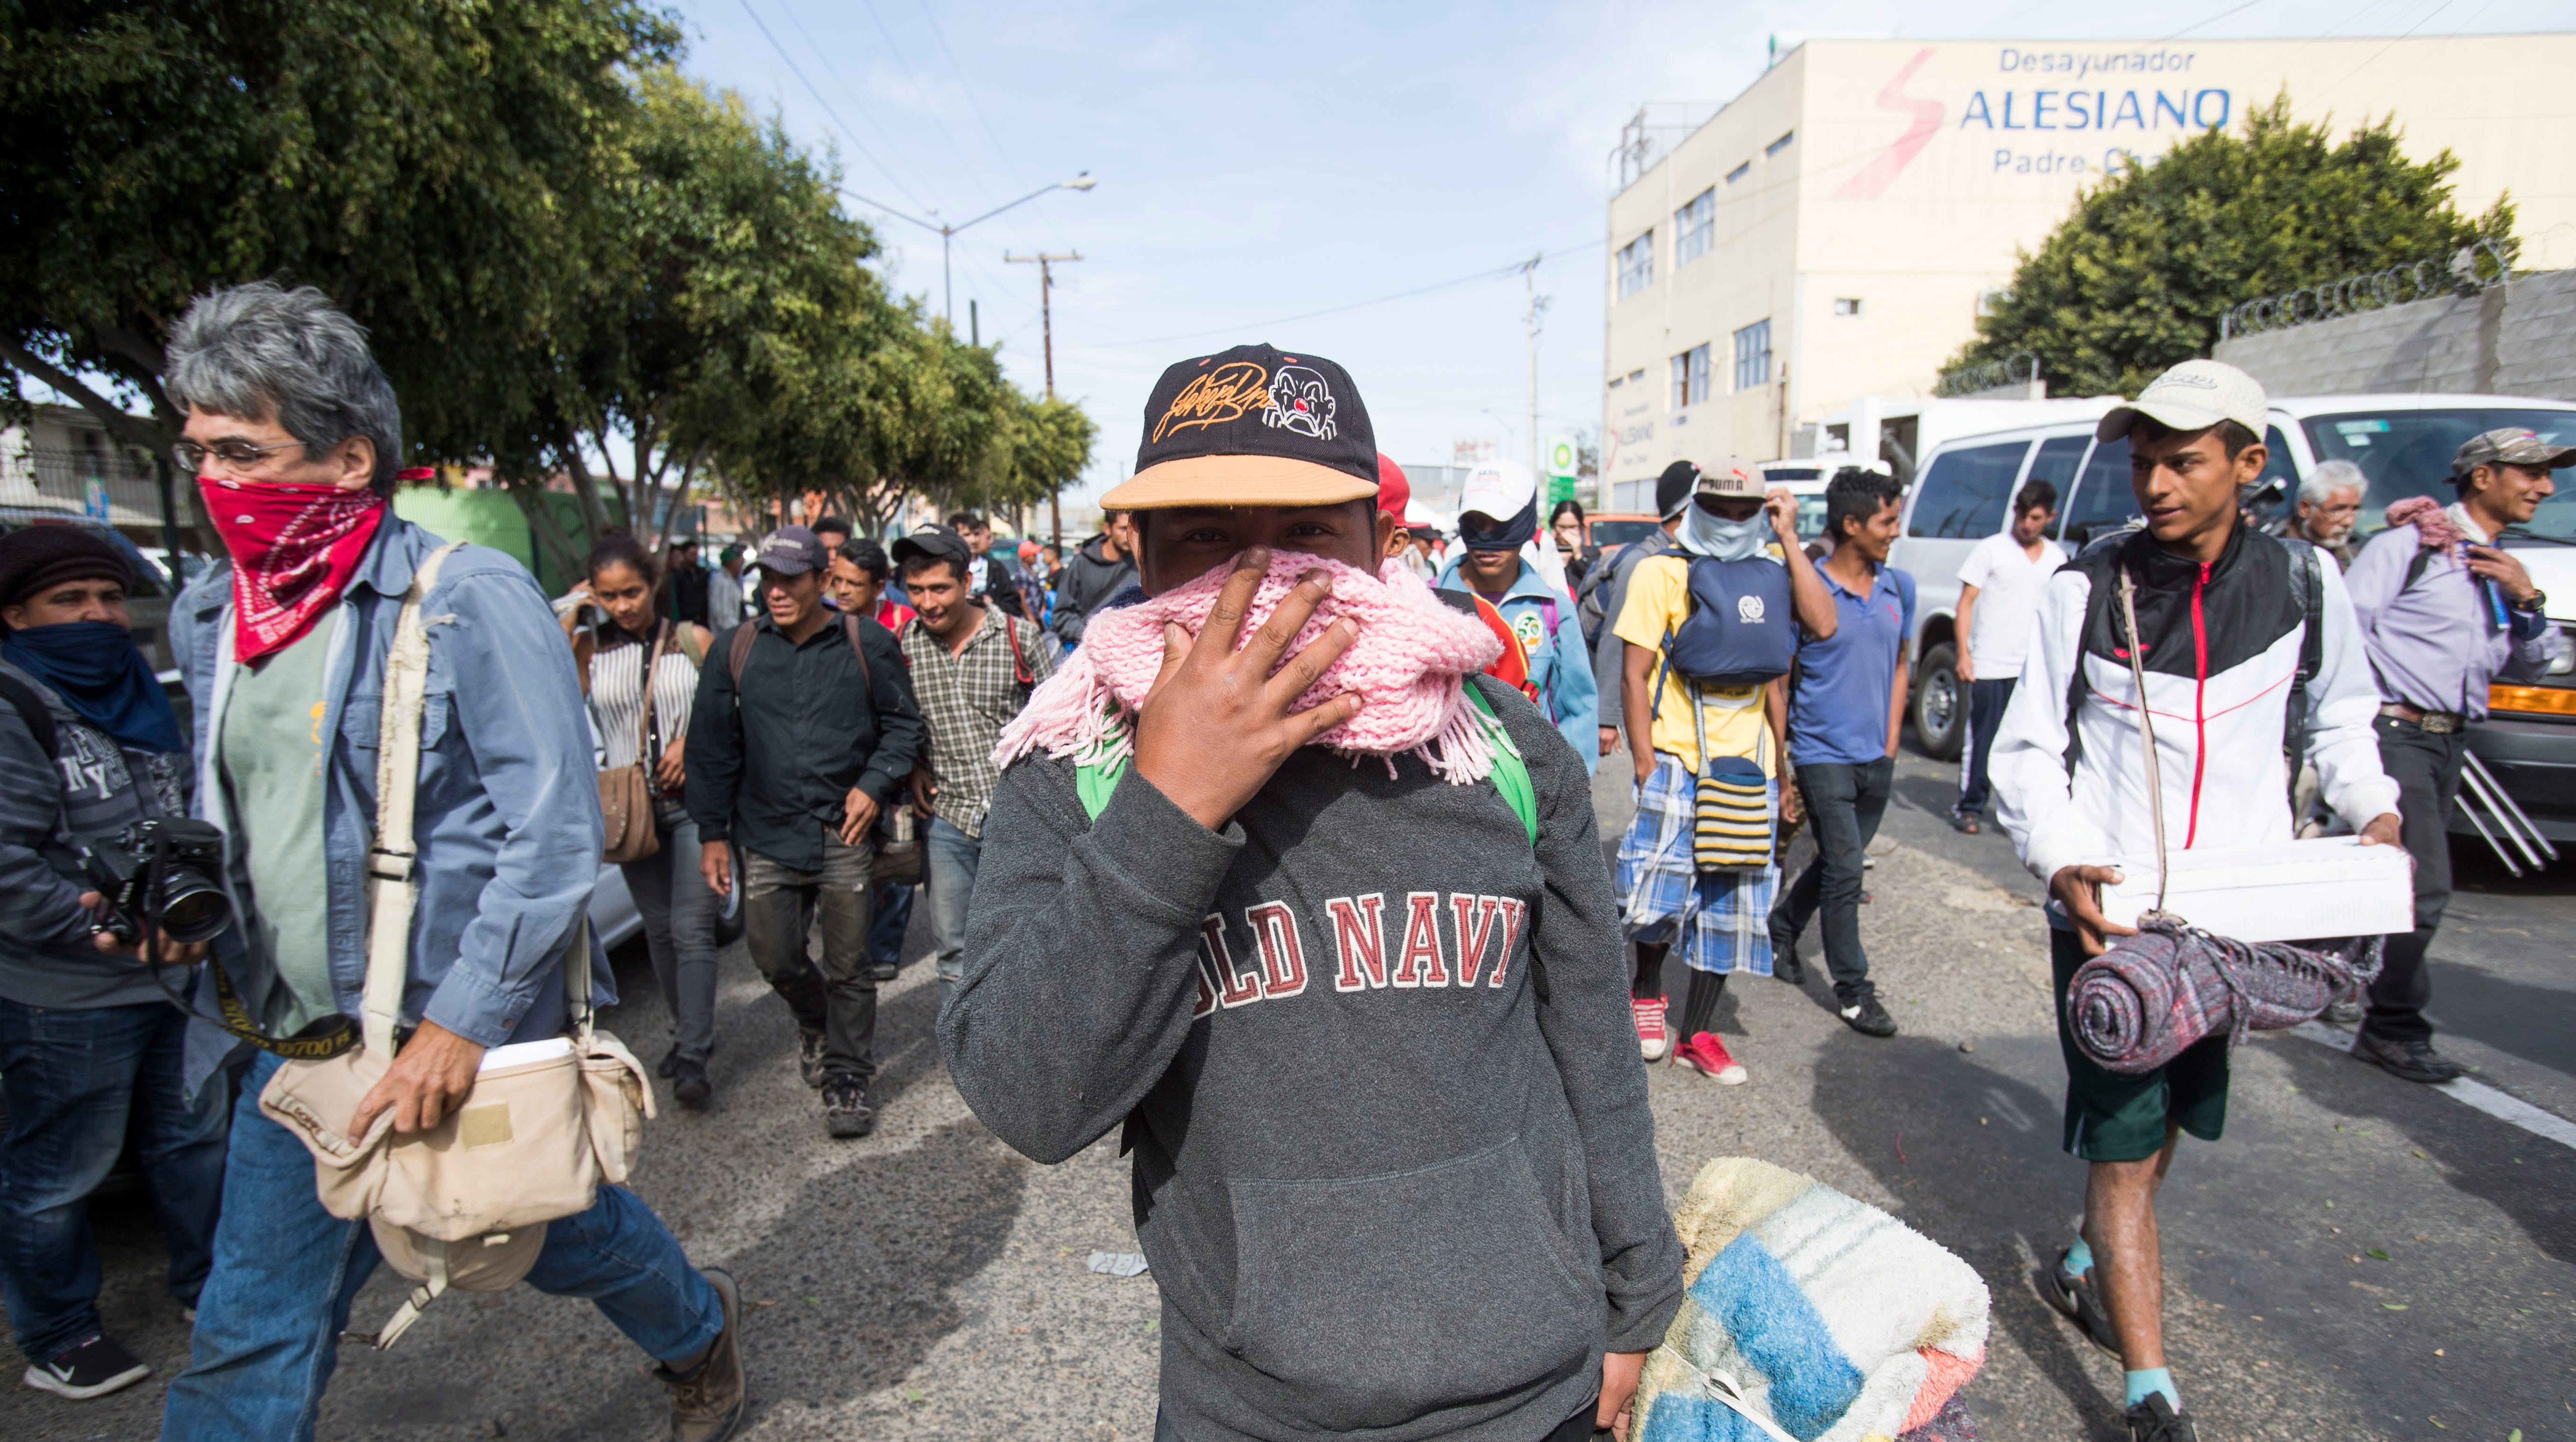 Members of the fist wave of the migrant caravan decided to head to Playas De Tijuana after arriving in Tijuana, Mexico on November 13, 2018. The group of 350 migrants traveled in 9 buses on the last part of the trip from Hermosillo, Sonora.